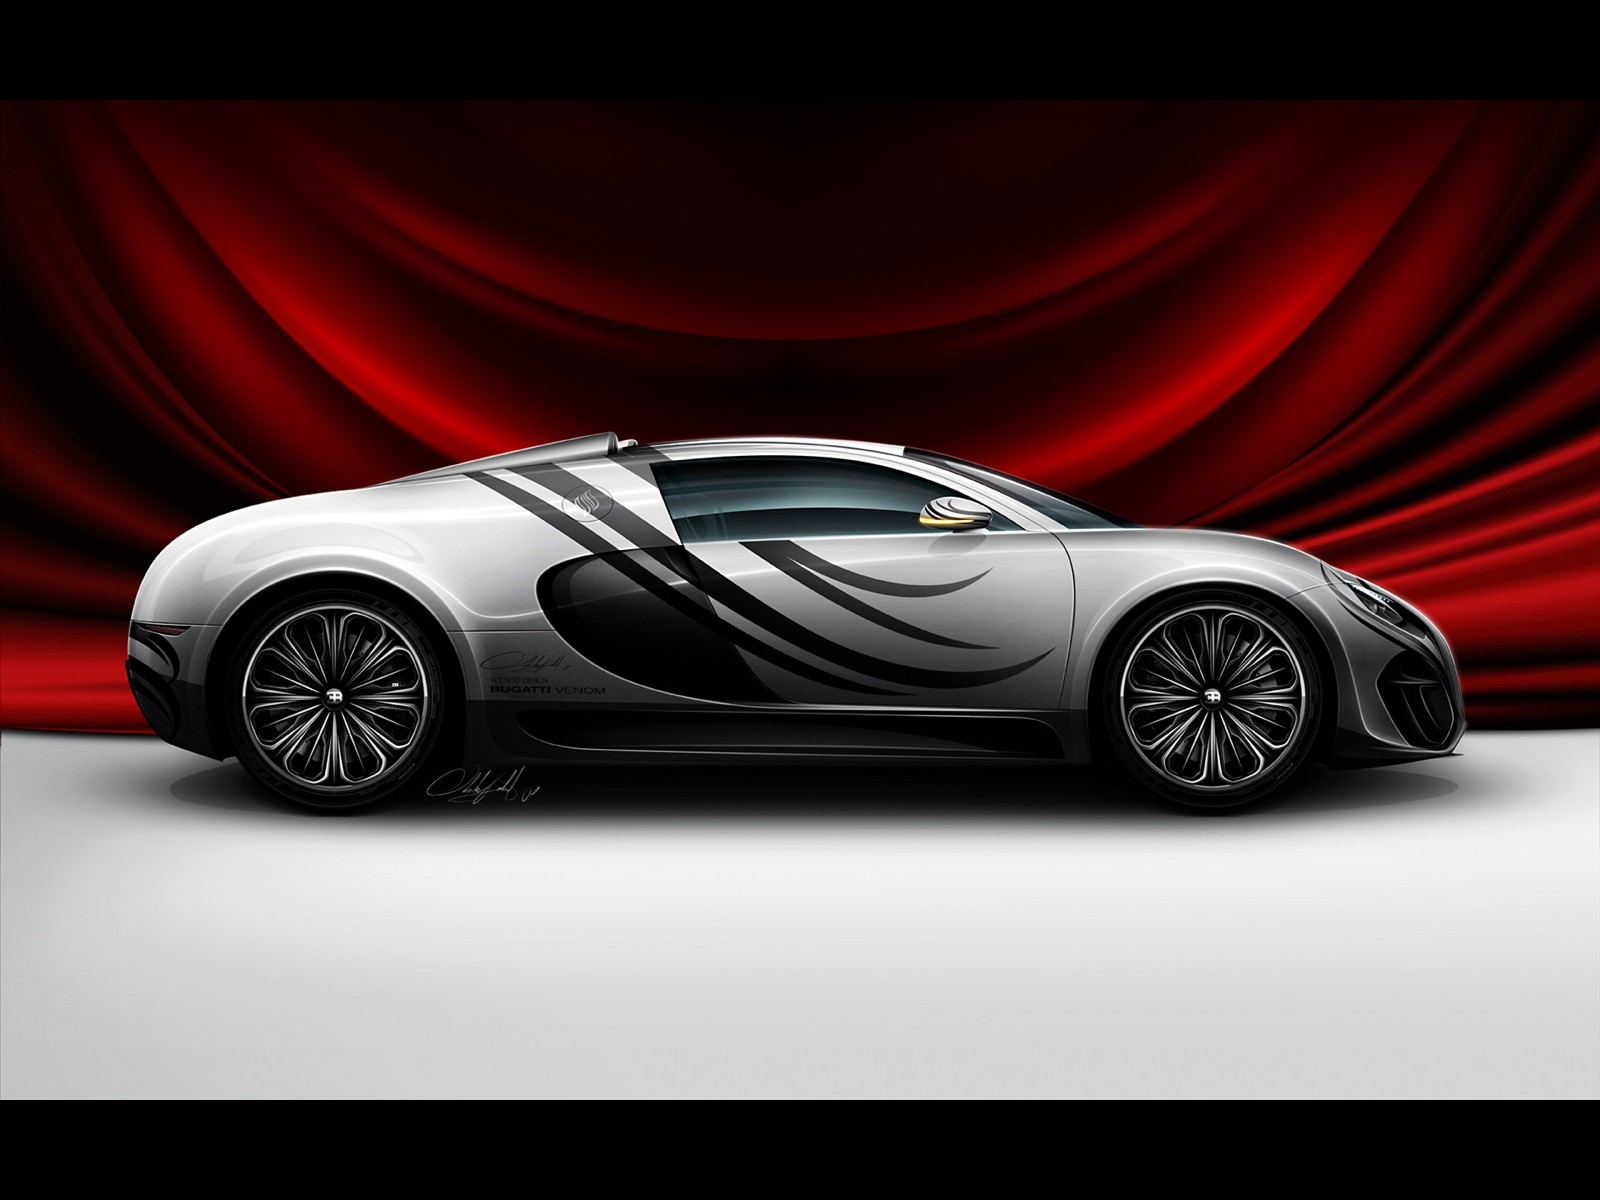 concept car hd wallpaper - photo #12